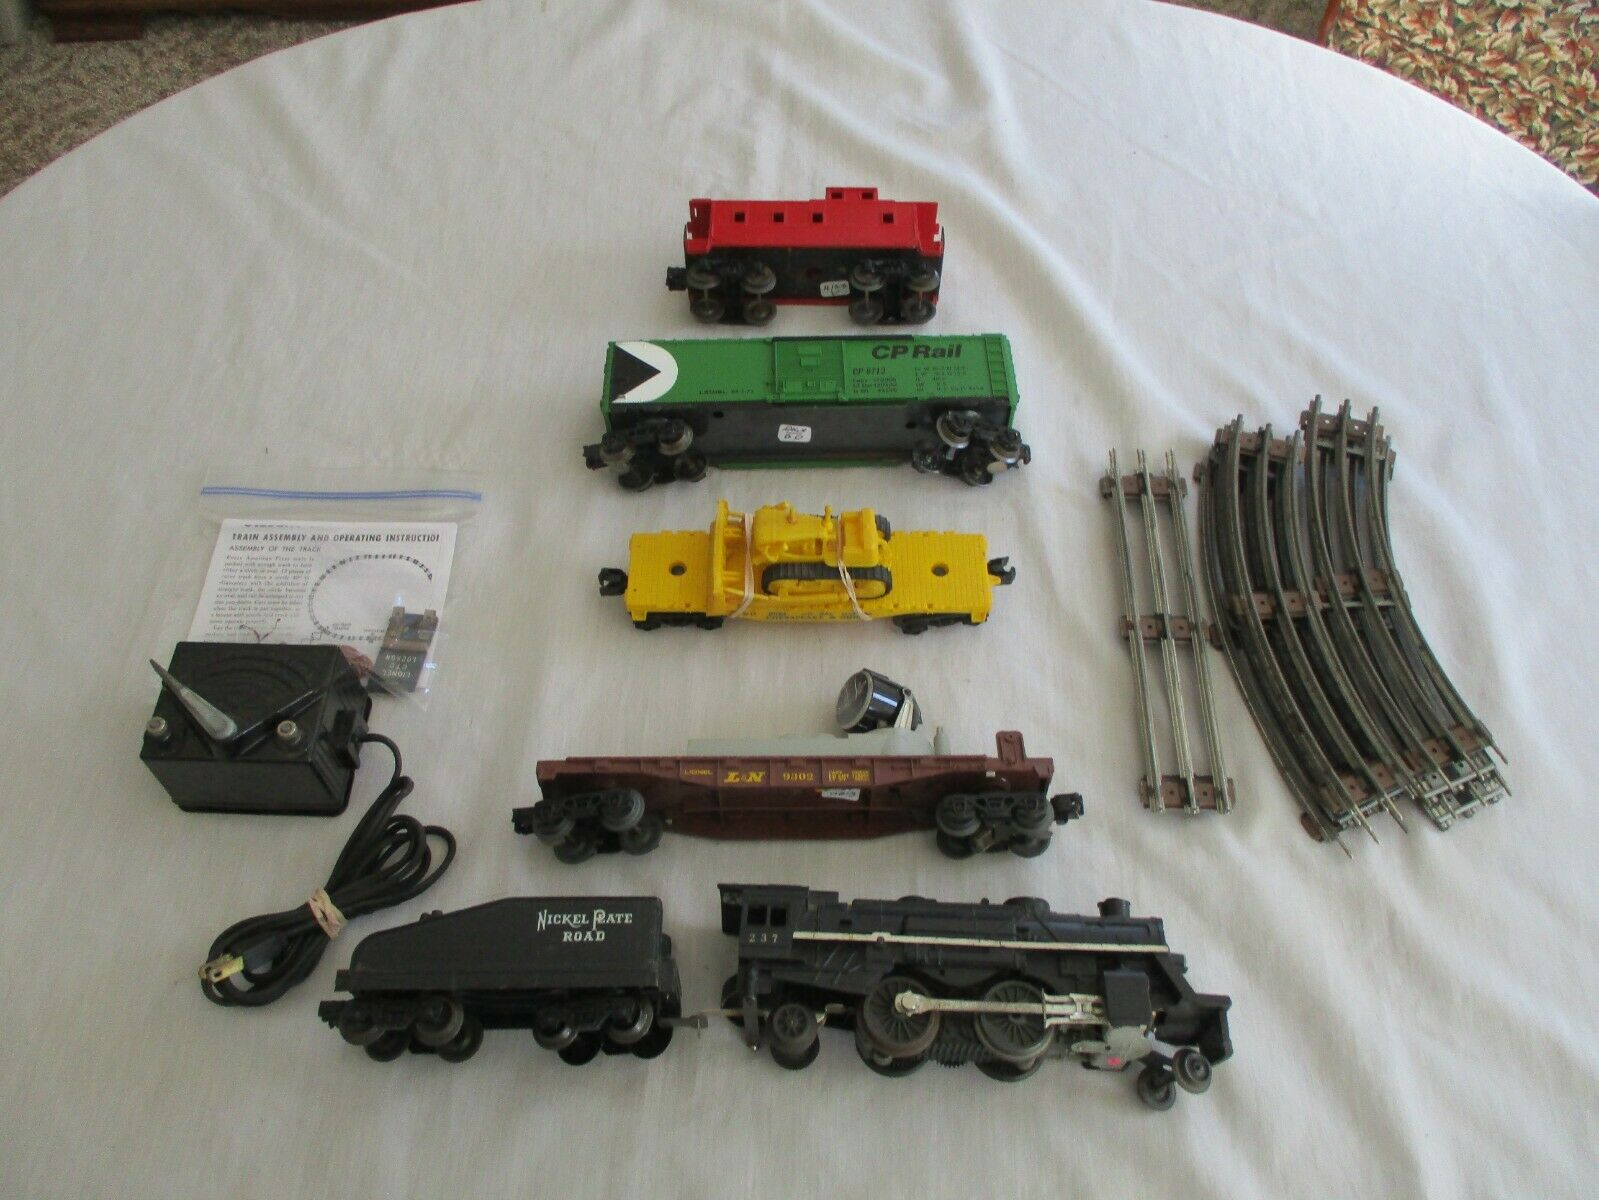 1  LIONEL  4 CAR FREIGHT TRAIN SET., SCOUT LOCO WITH SMOKE AND HEADLIGHT. EXCELL